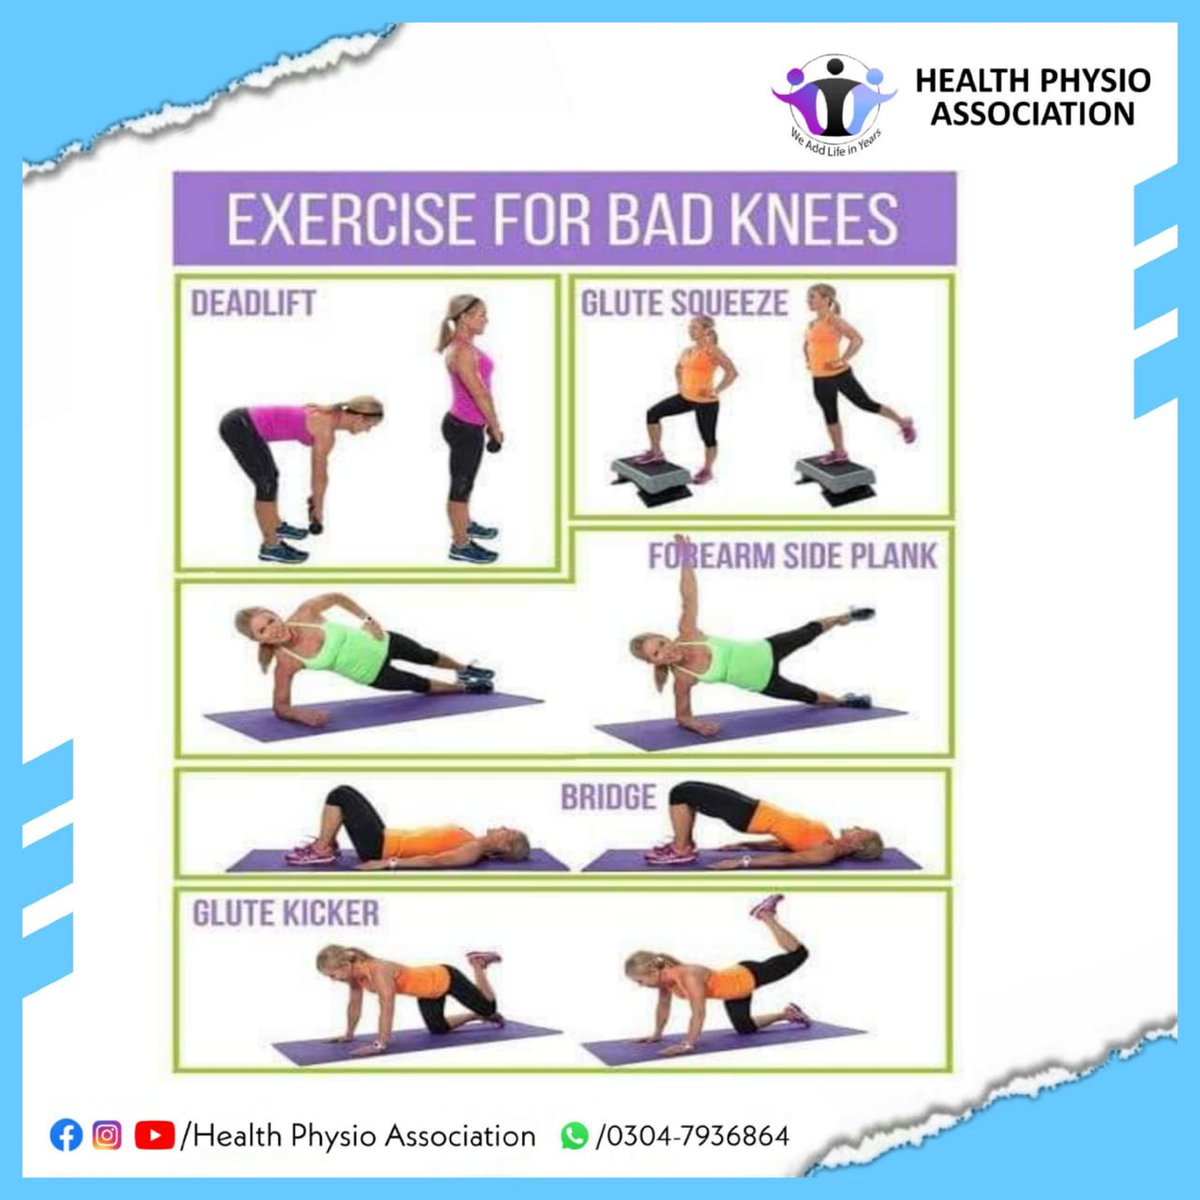 Learn with HPA 📚 ➖ Exercise for Bad knees ➖ If your knee's not at its best, start with a simple #strengthening exercise for your quadriceps, the #muscles in the front of the thigh. #kneepain #backpain #physicaltherapy #physiotherapy #painrelief #jointpain